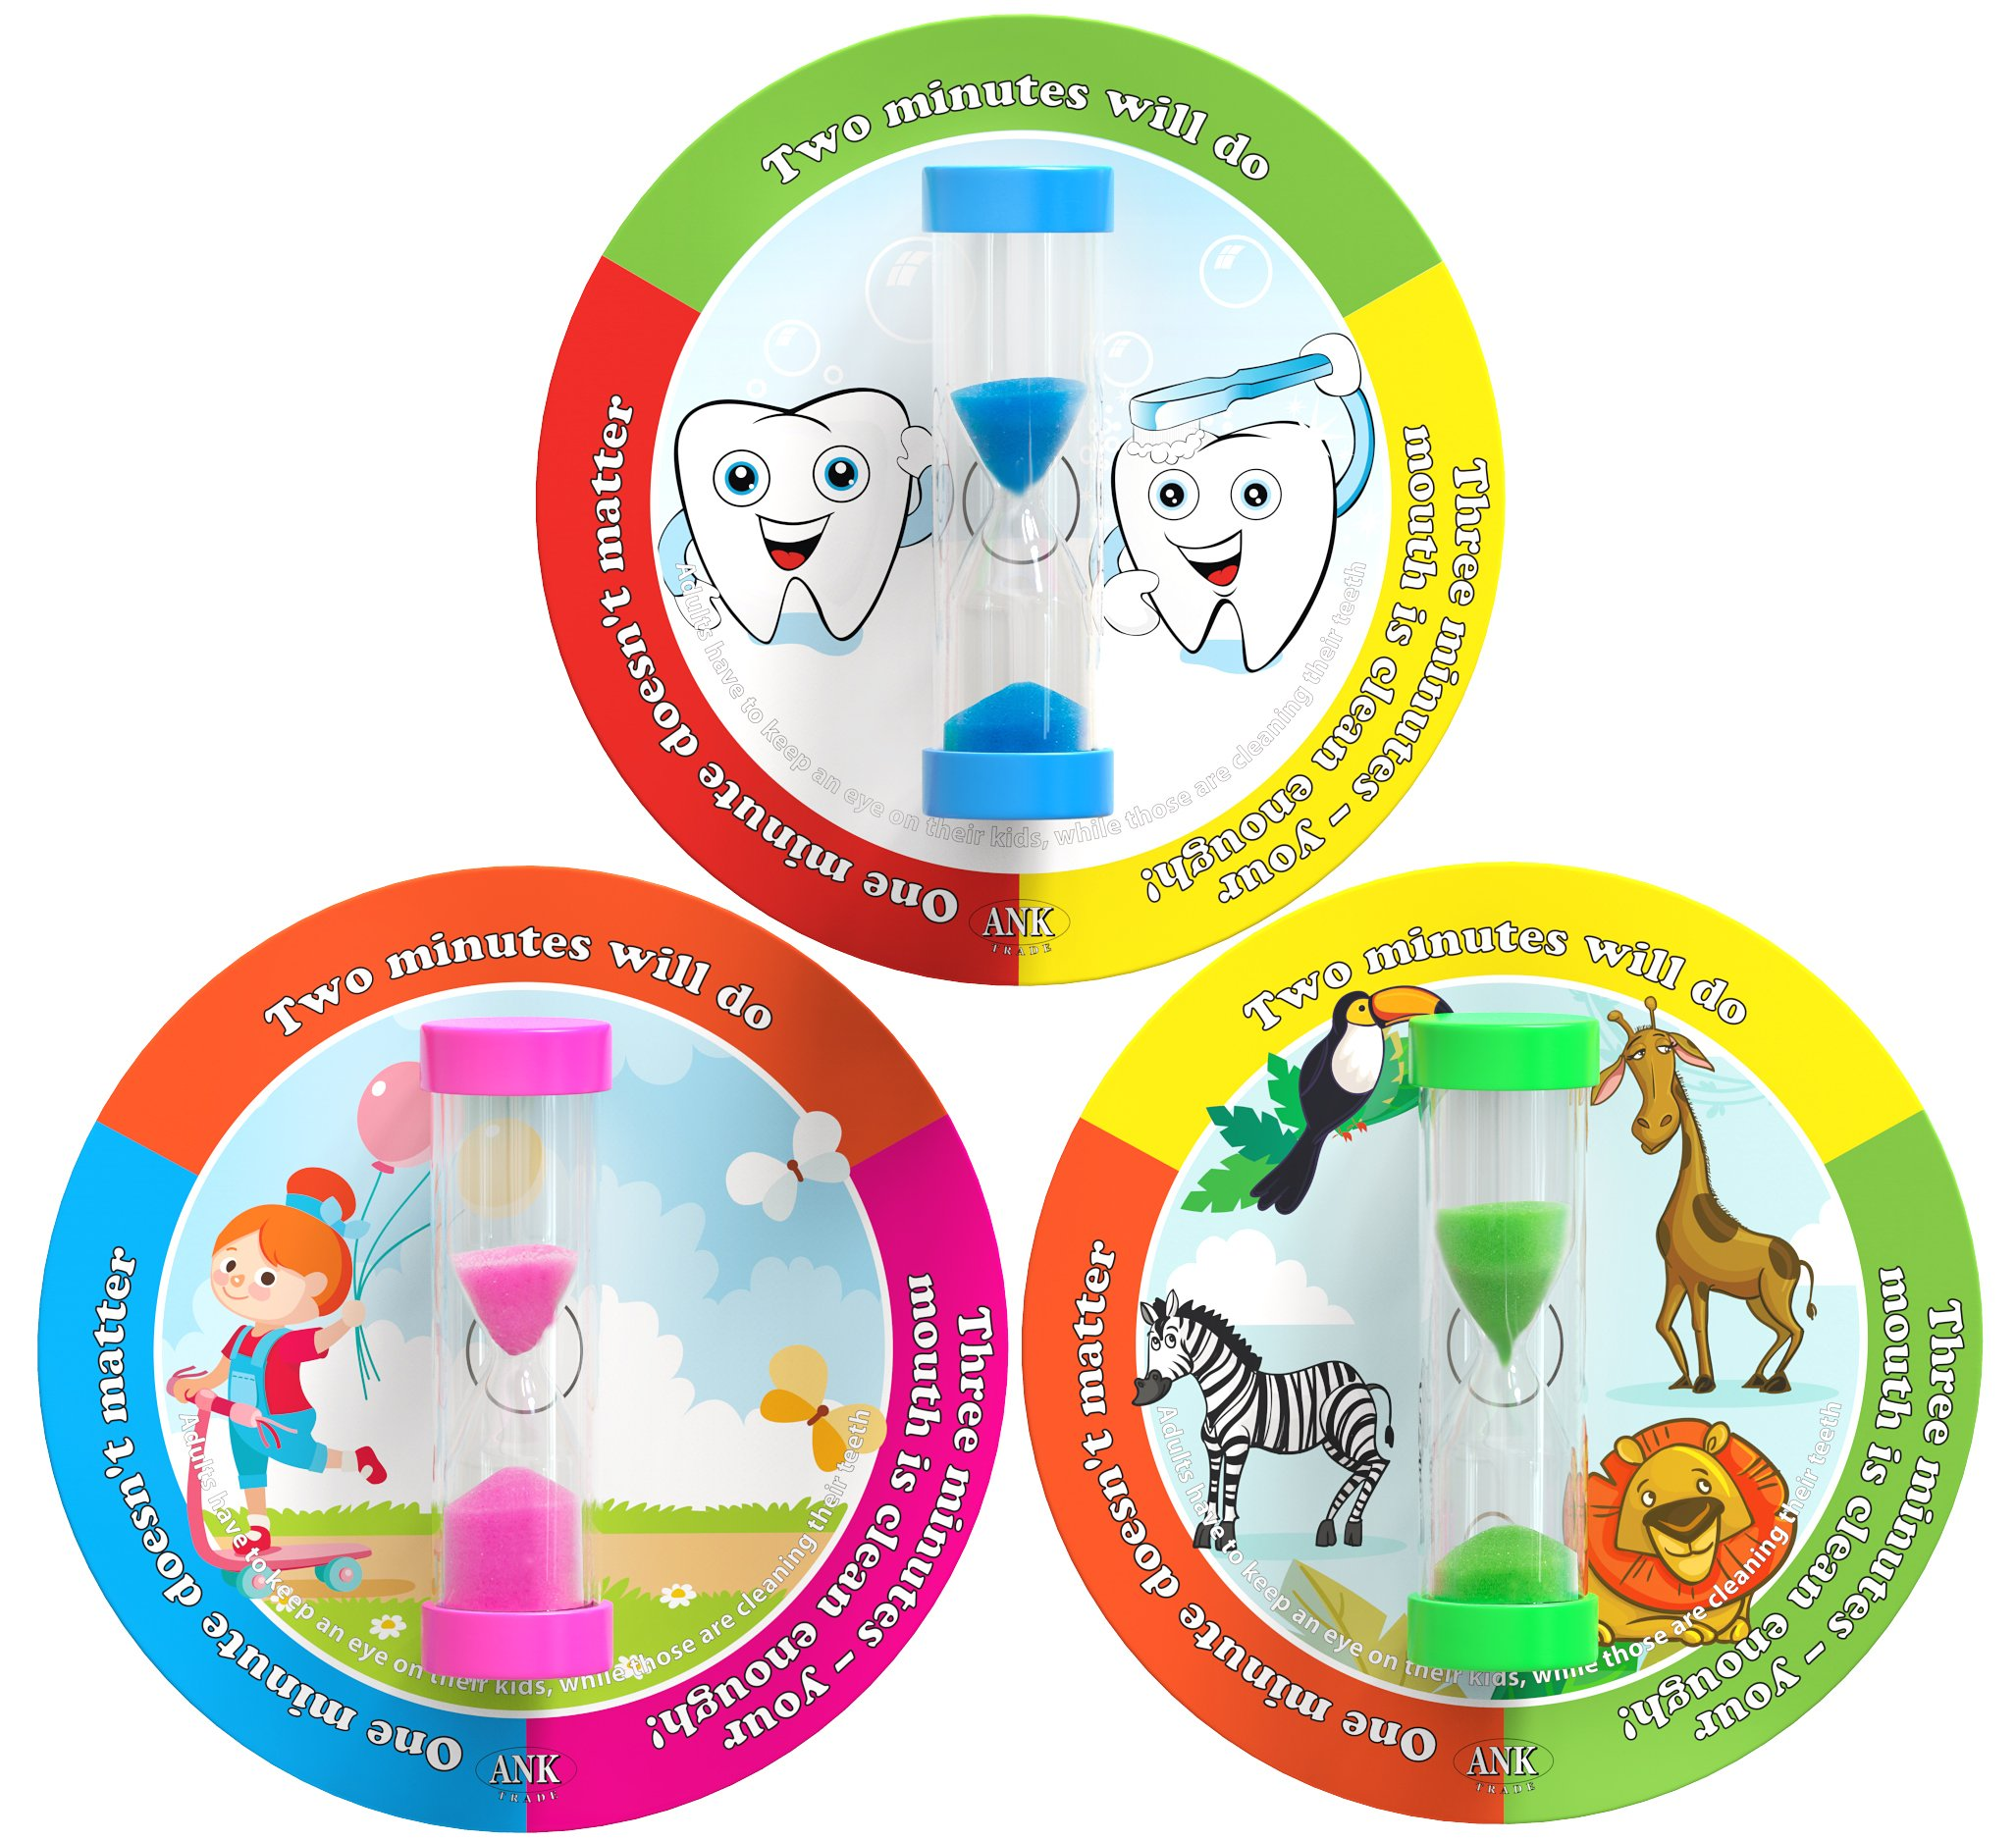 ANK-Trade 3 Minutes Toothbrush Timer Helps Ingrain Thorough Brushing Habit for Better Oral Health - Set of 3 Tooth Brushing Timer for Kids - Hourglass Sand Timer - Blue, Pink & Green